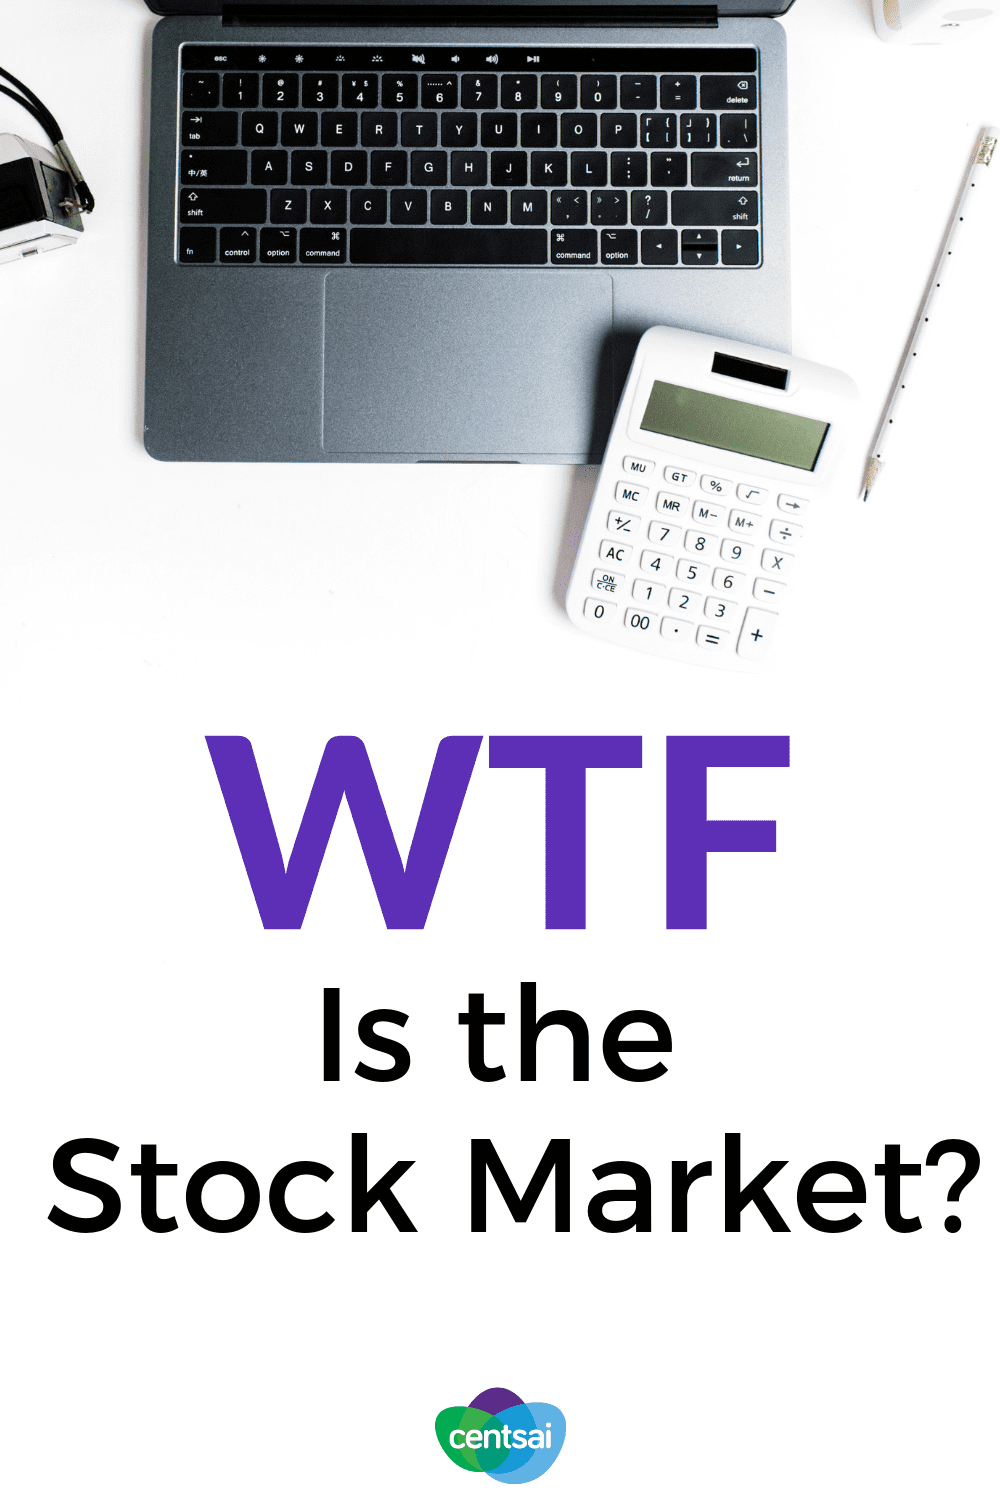 WTF Is the Stock Market? You've heard stories of stock investments making people rich, but what is the stock market, really? And how does it work? Read and learn. #investing #stockmarket #investments